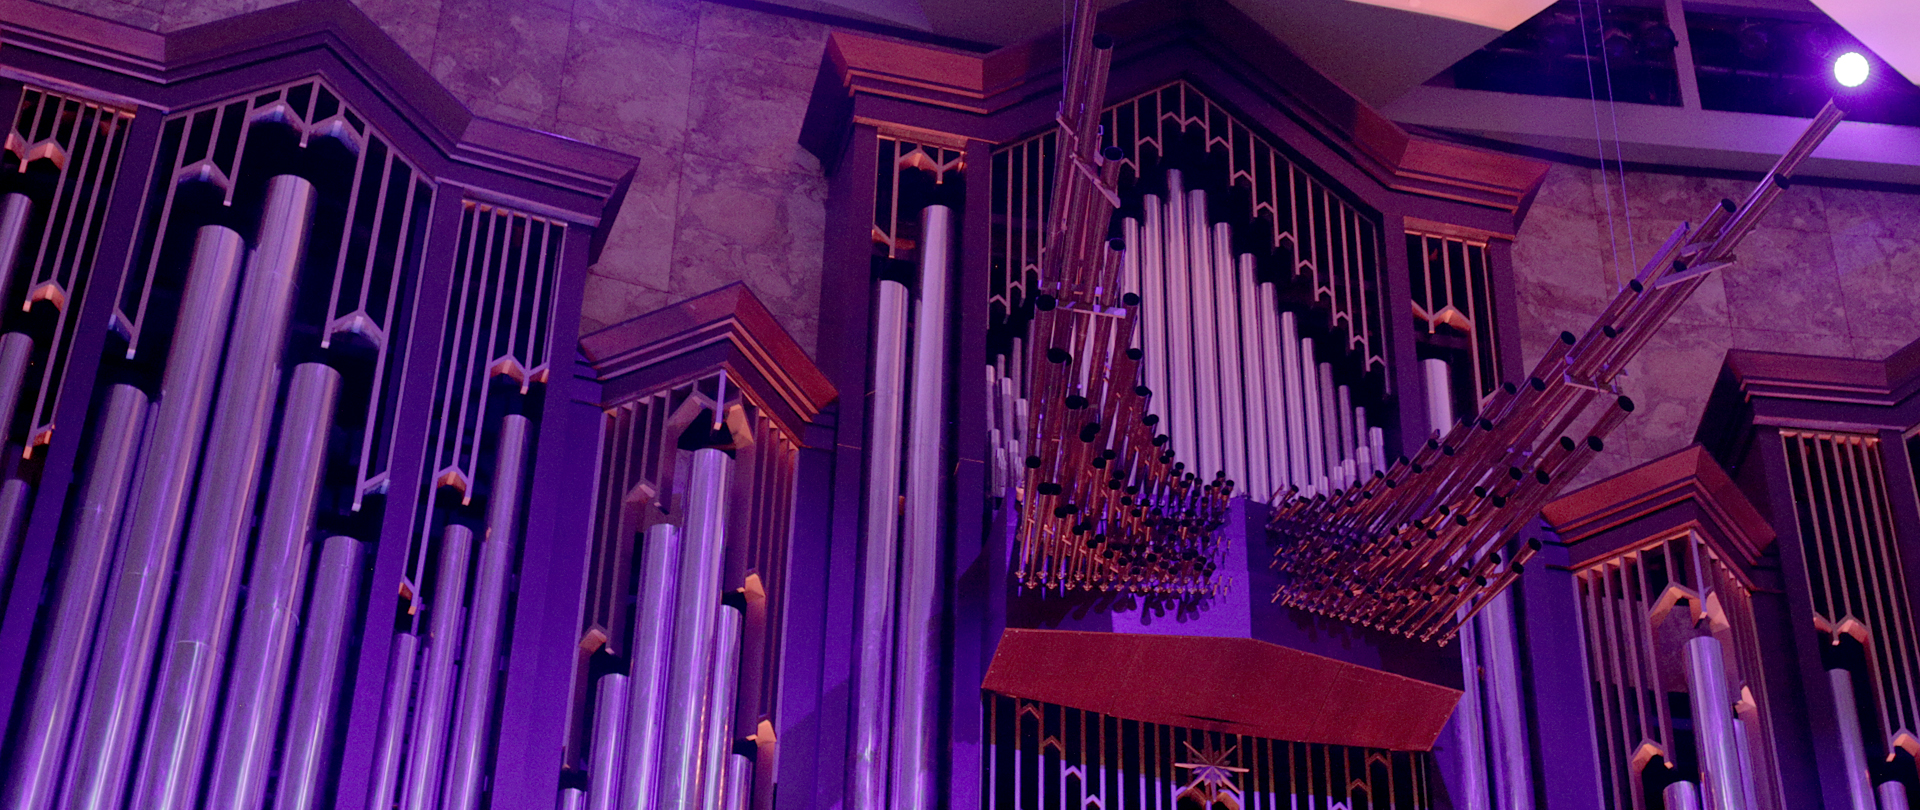 Organ Concert